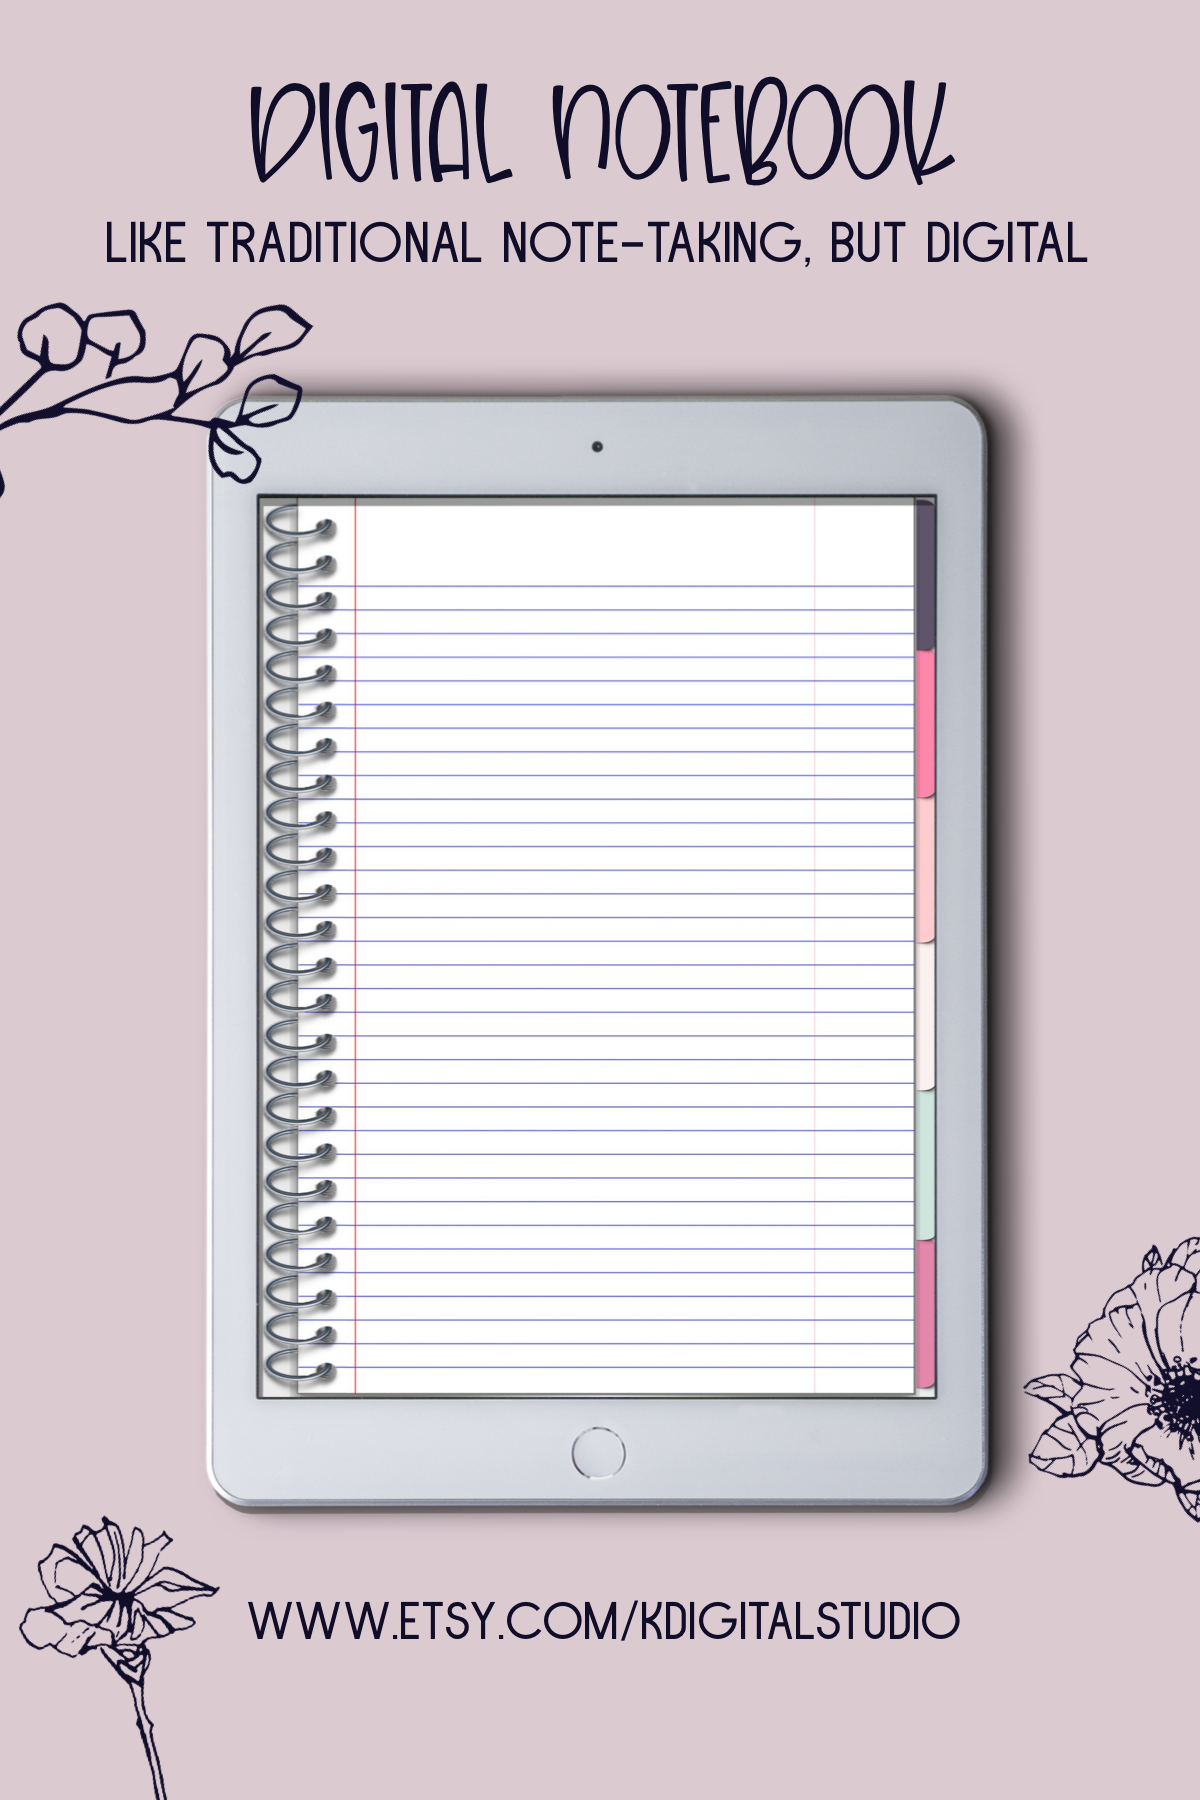 digital notebook for iPad and Android, GoodNotes